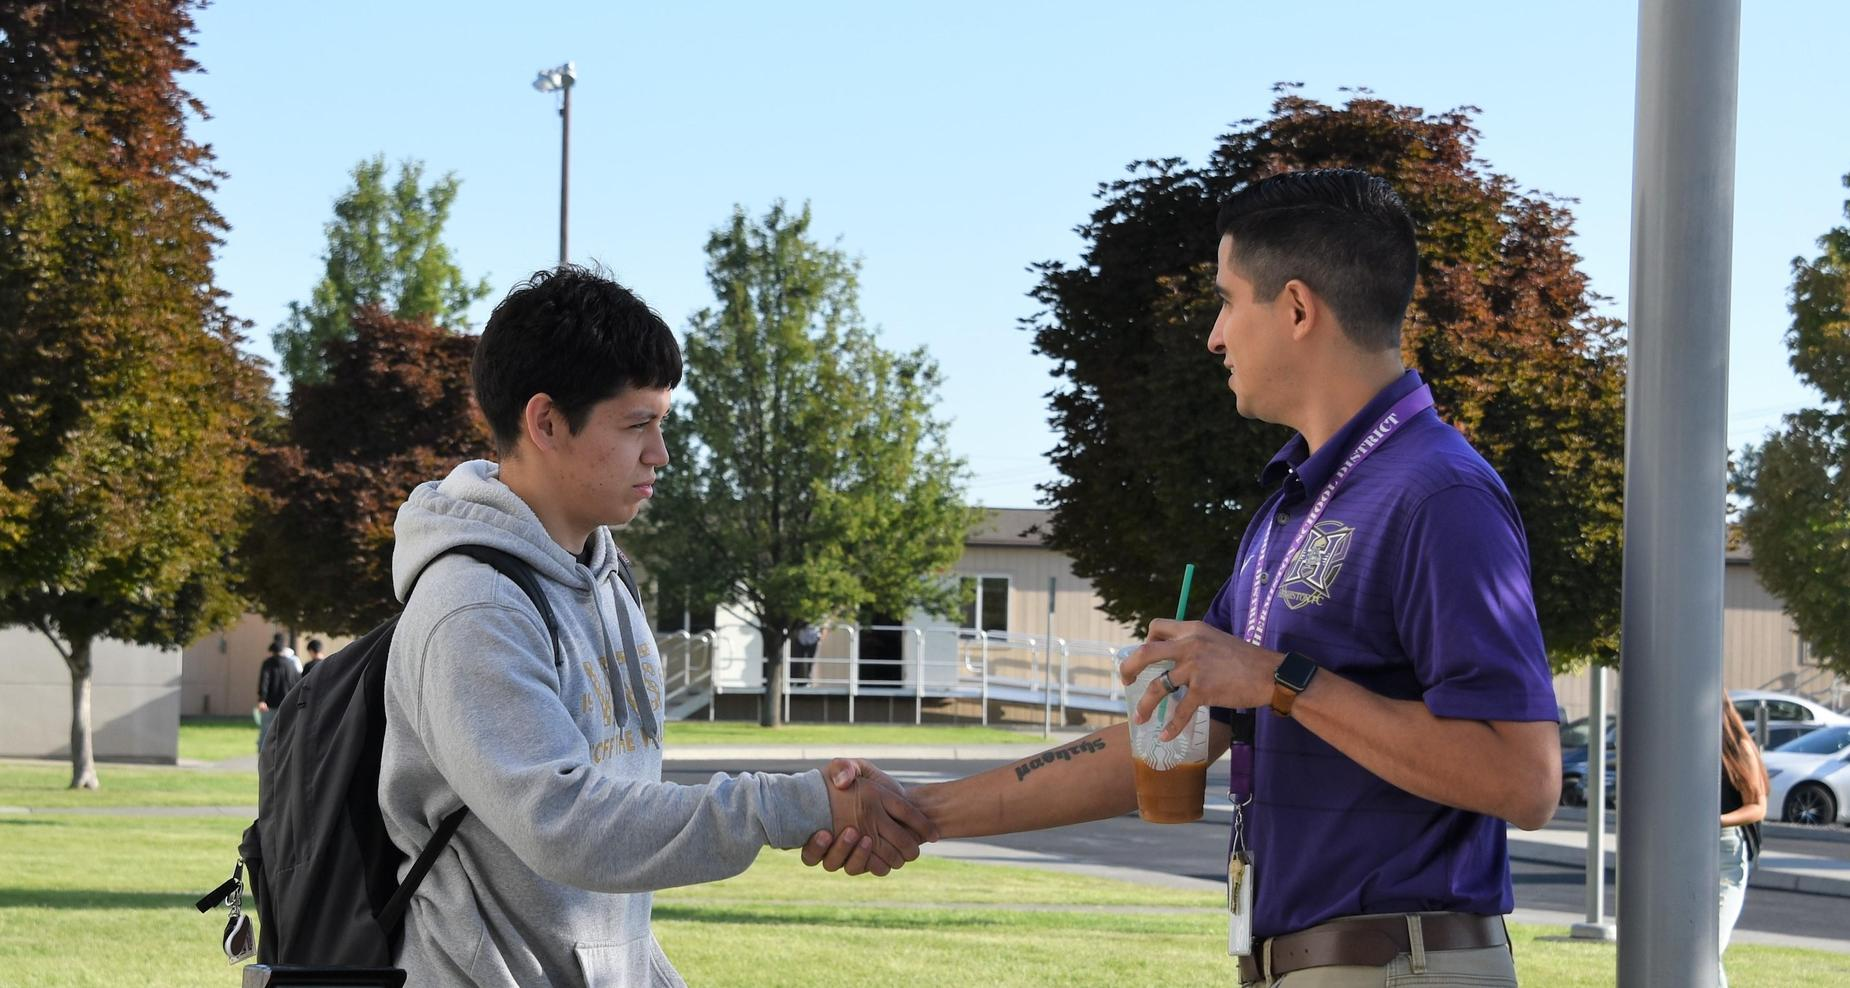 Boy shaking a counselor's hand.